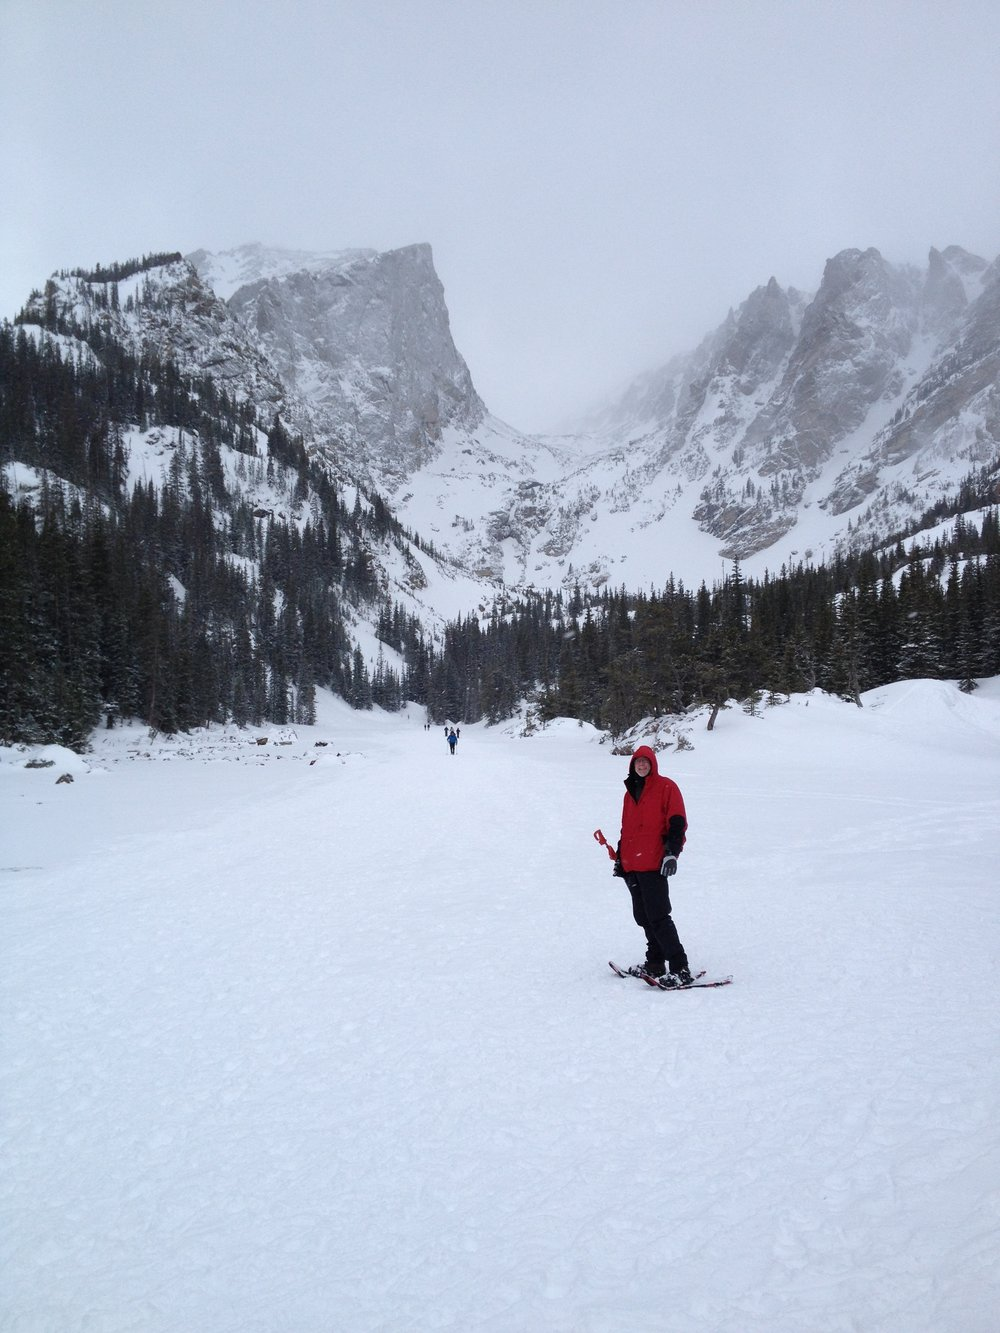 Snowshoeing in Rocky Mountain National Park. Photo: Joe Ross